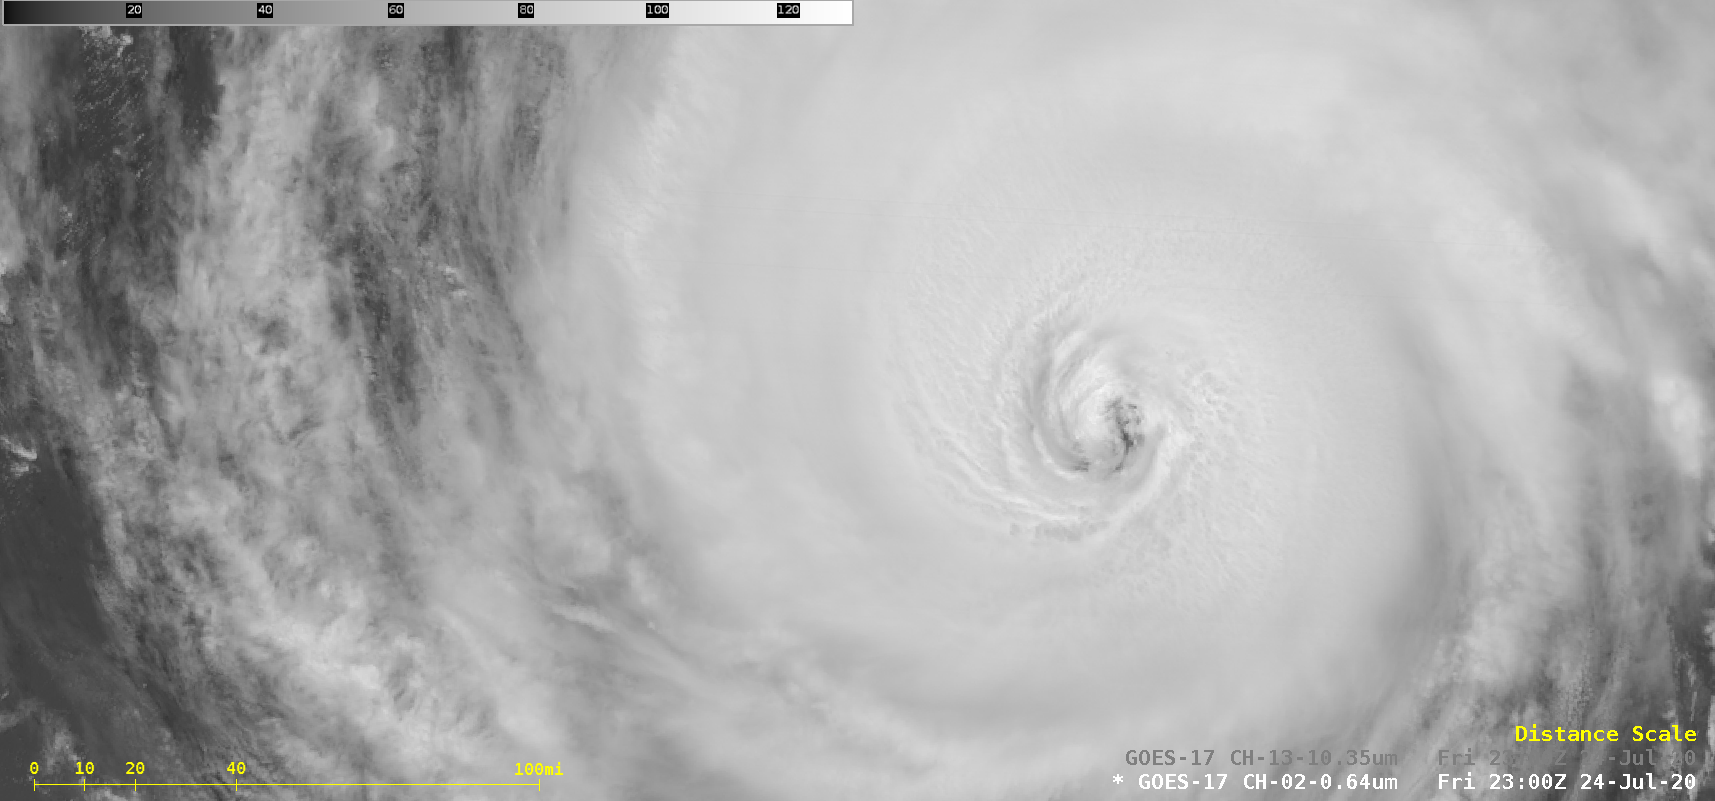 """GOES-17 """"Red"""" Visible (0.64 µm) and """"Clean"""" Infrared Window (10.35 µm) images [click to play animation 